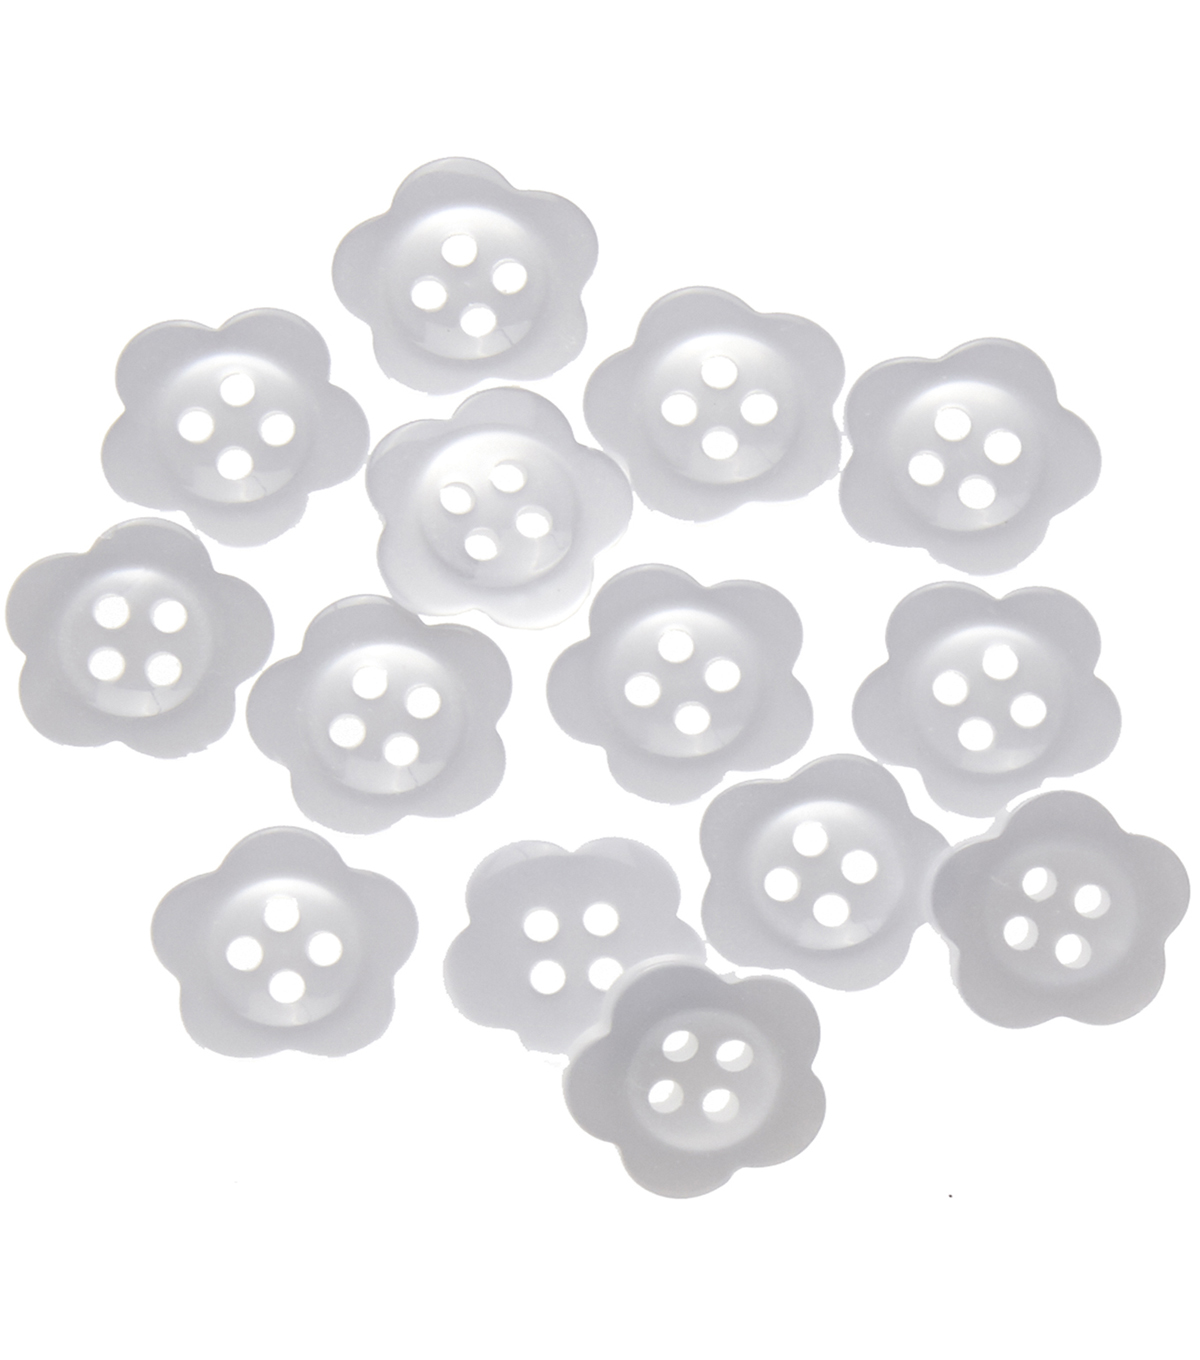 Favorite Findings 14 pk 0.63\u0027\u0027 Buttons-White Blooms